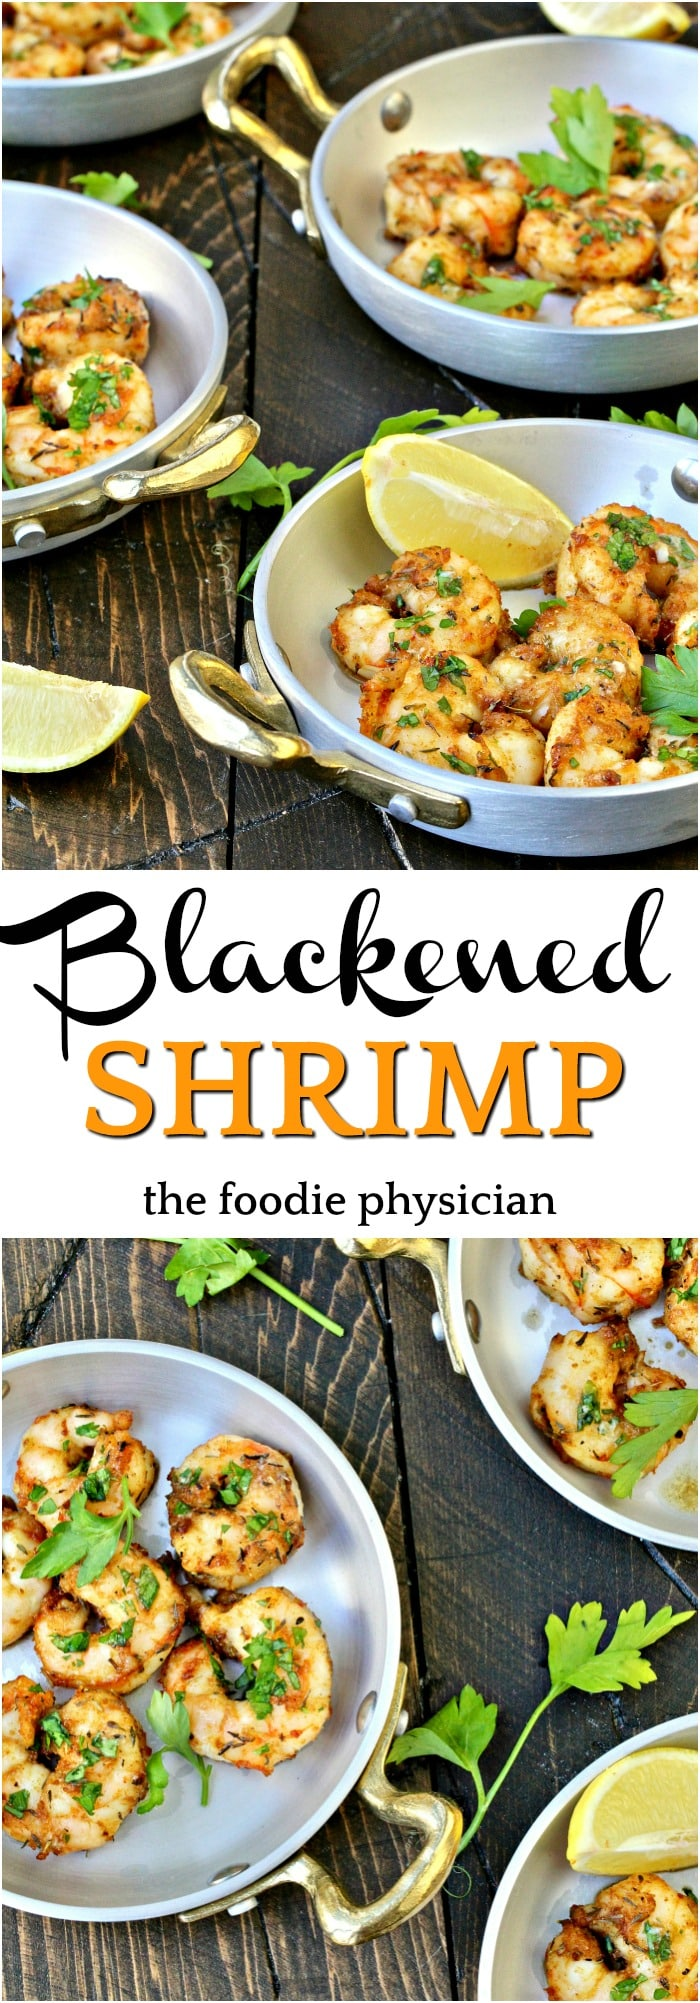 These Blackened Shrimp from the book Fertility Foods are nutritious, packed with flavor, and easy to make- they're the perfect weeknight dinner solution!